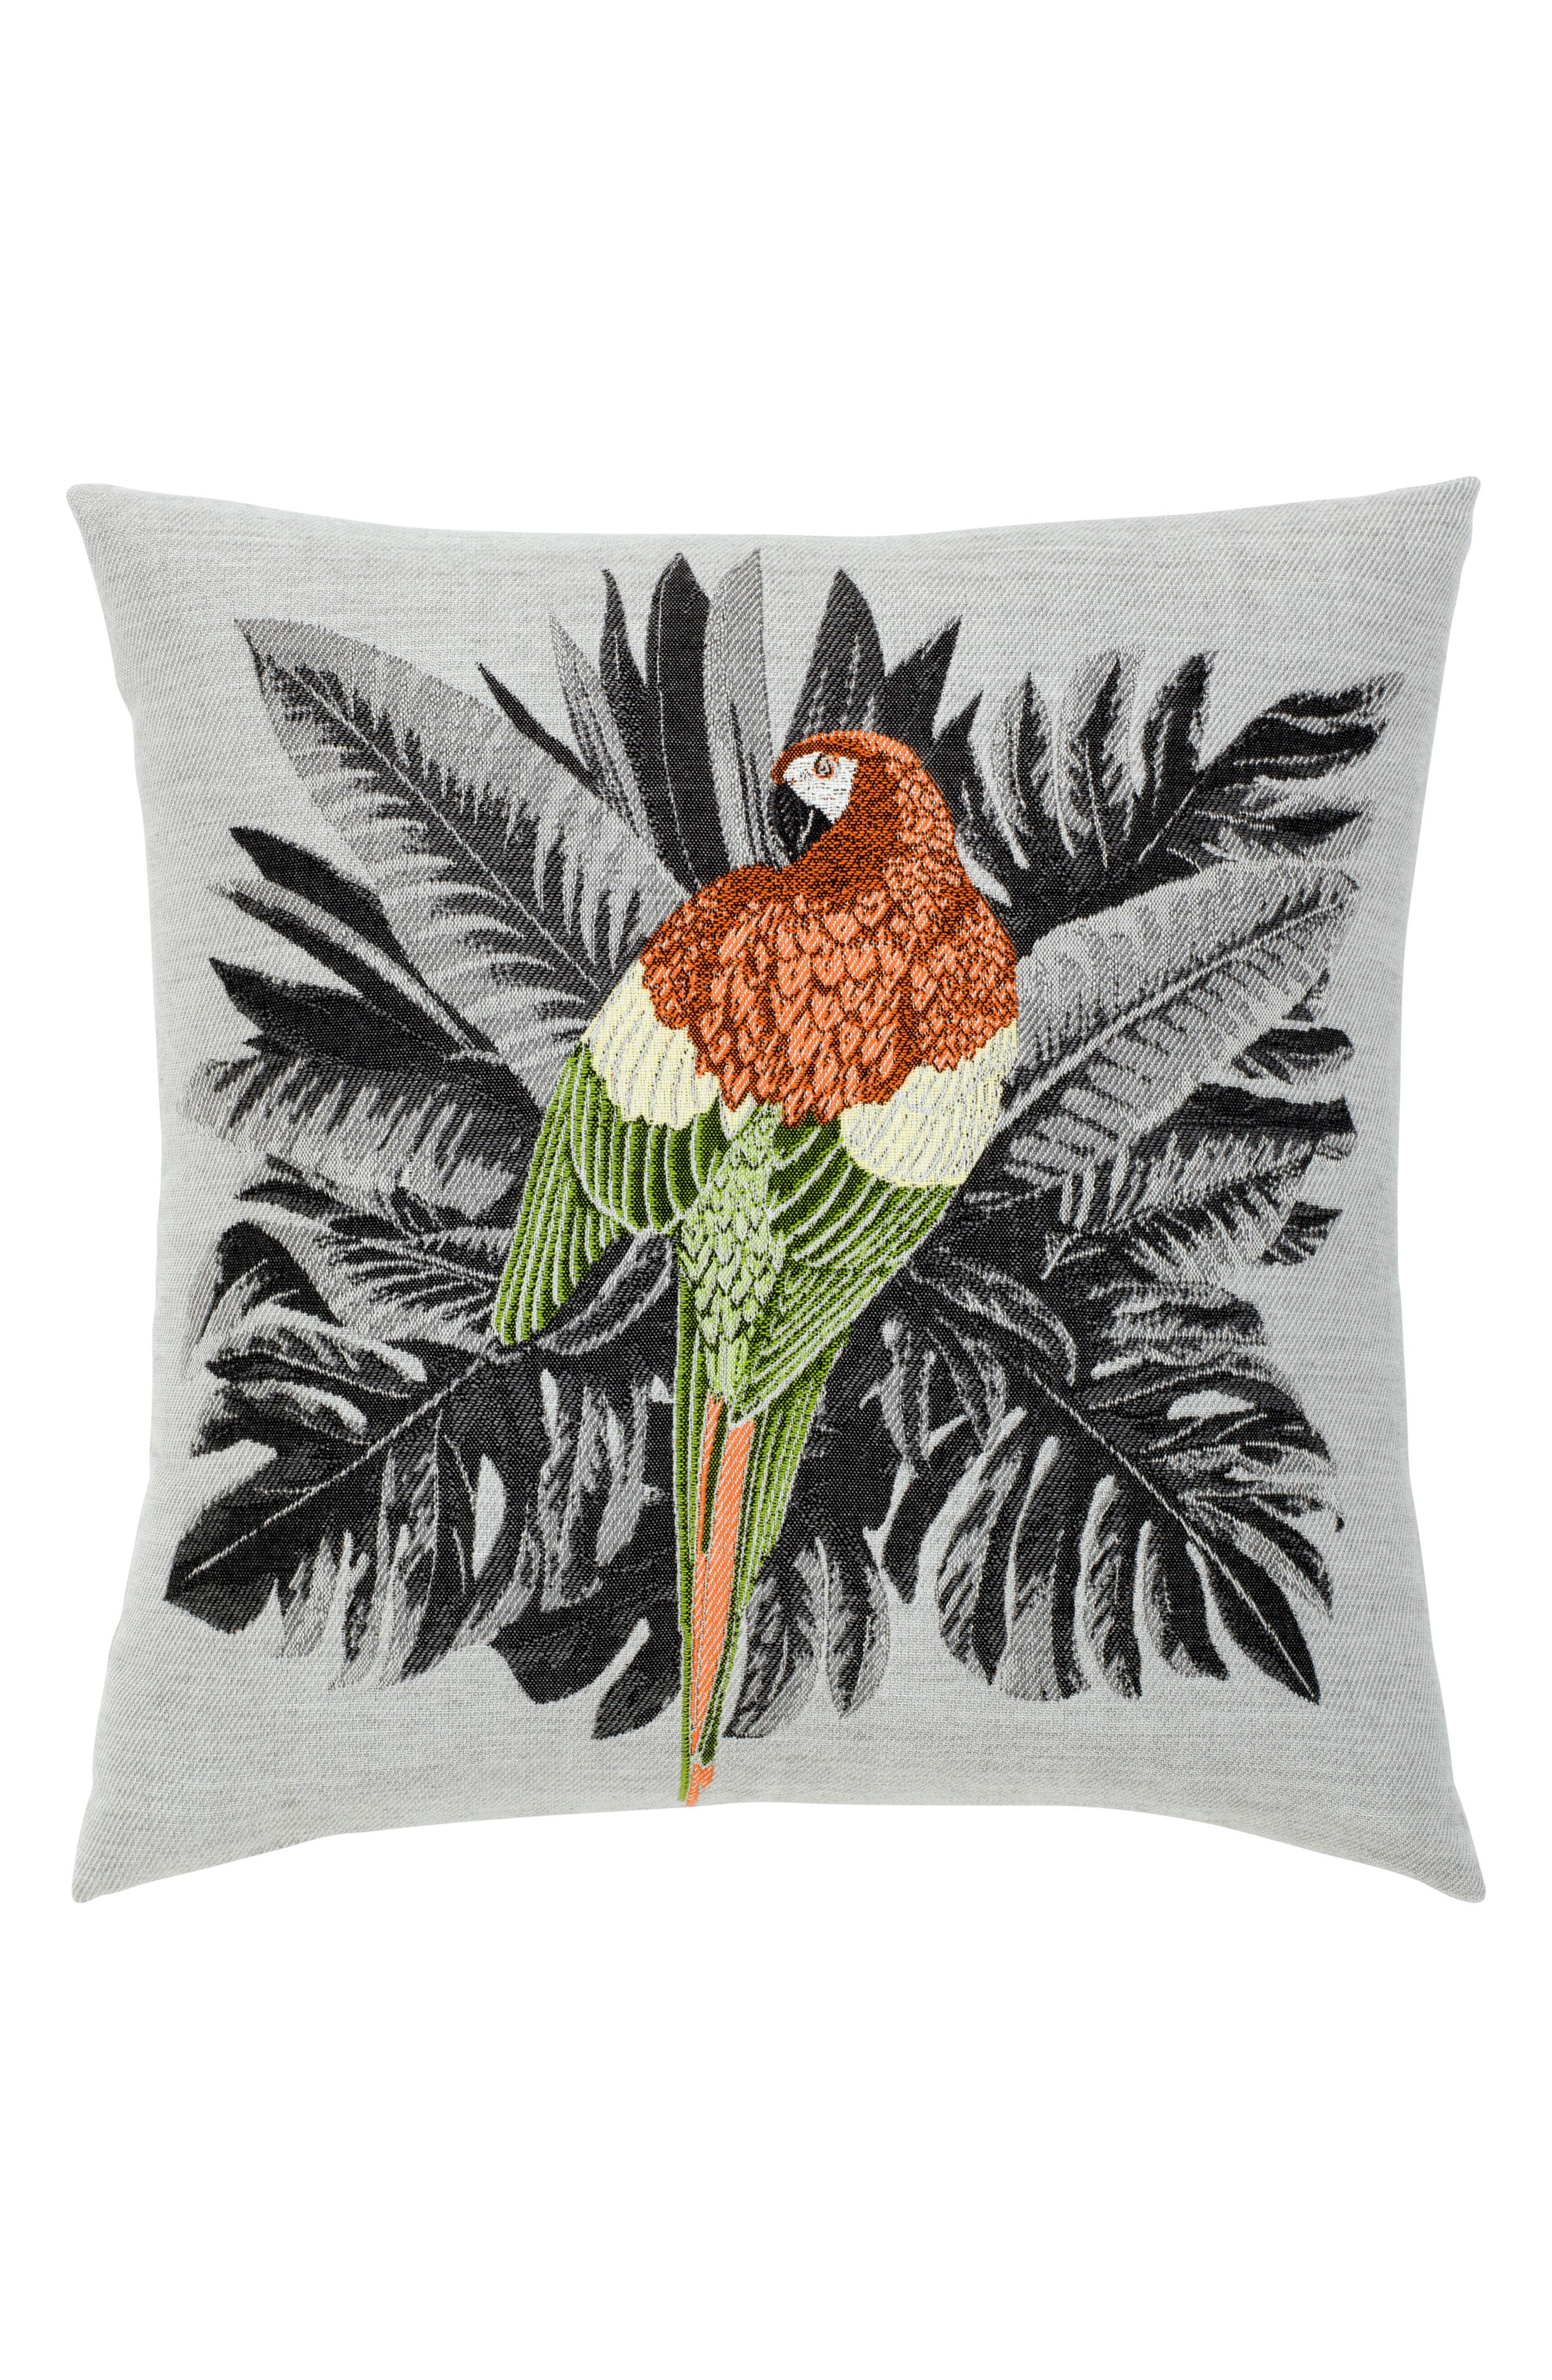 Macaw Indoor/Outdoor Accent Pillow,                             Main thumbnail 1, color,                             Grey Multi